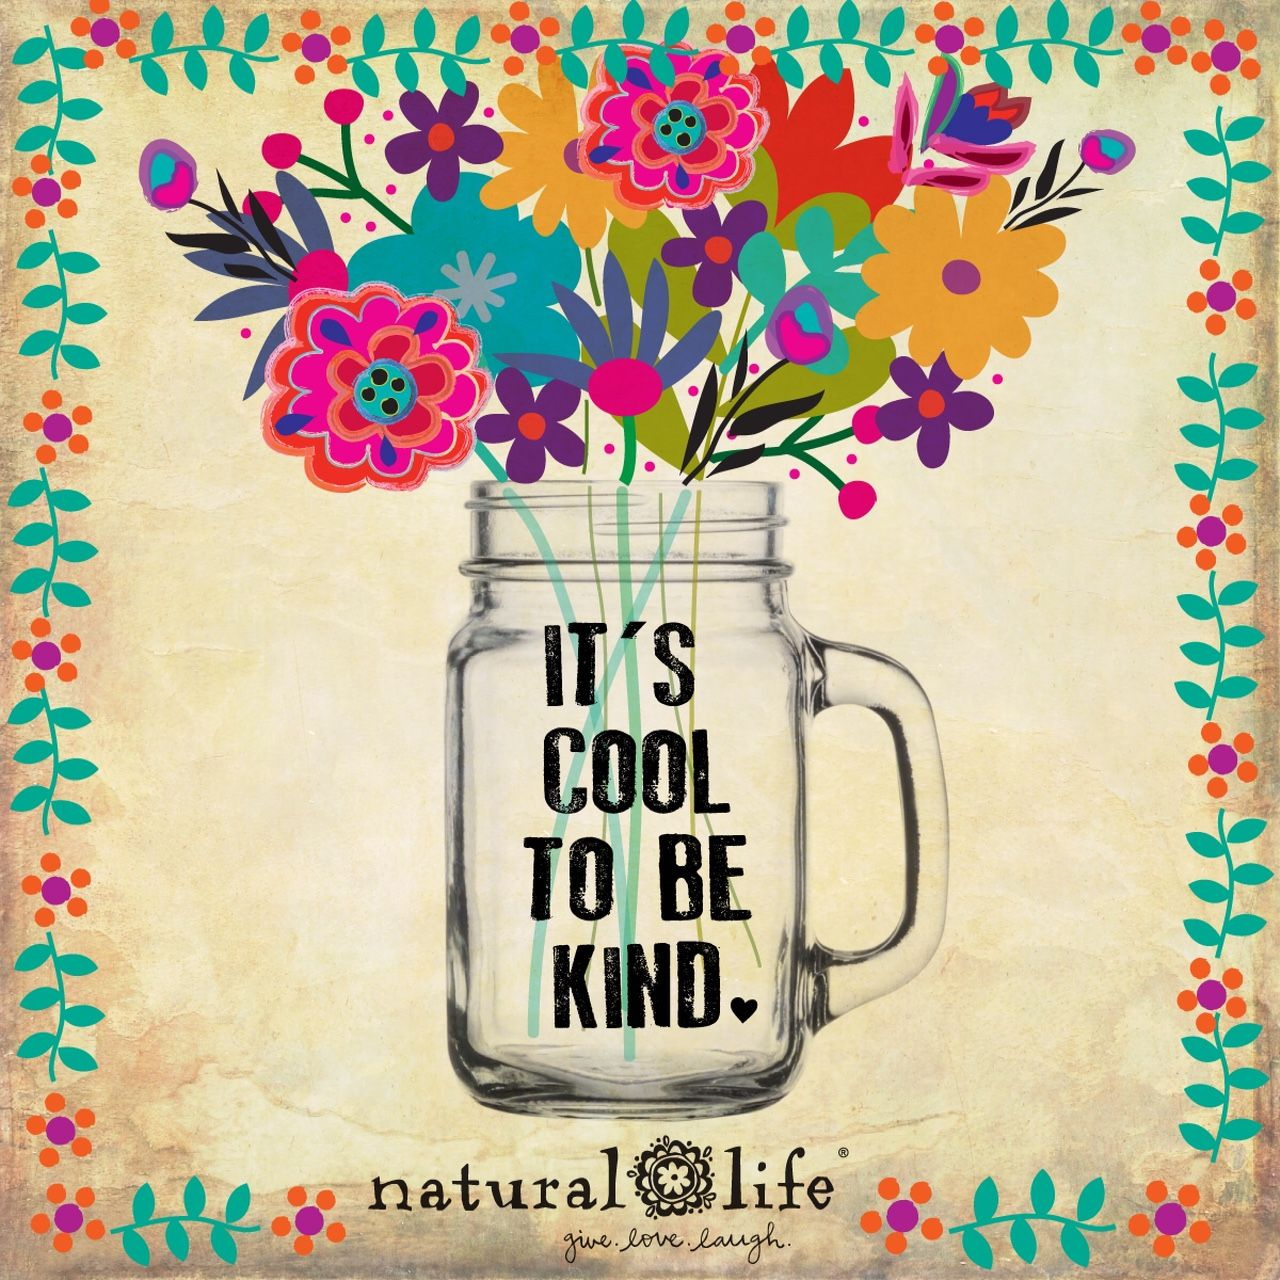 Inspirational Products Boho Decorations Natural Life Quotes Kindness Quotes Think Happy Thoughts